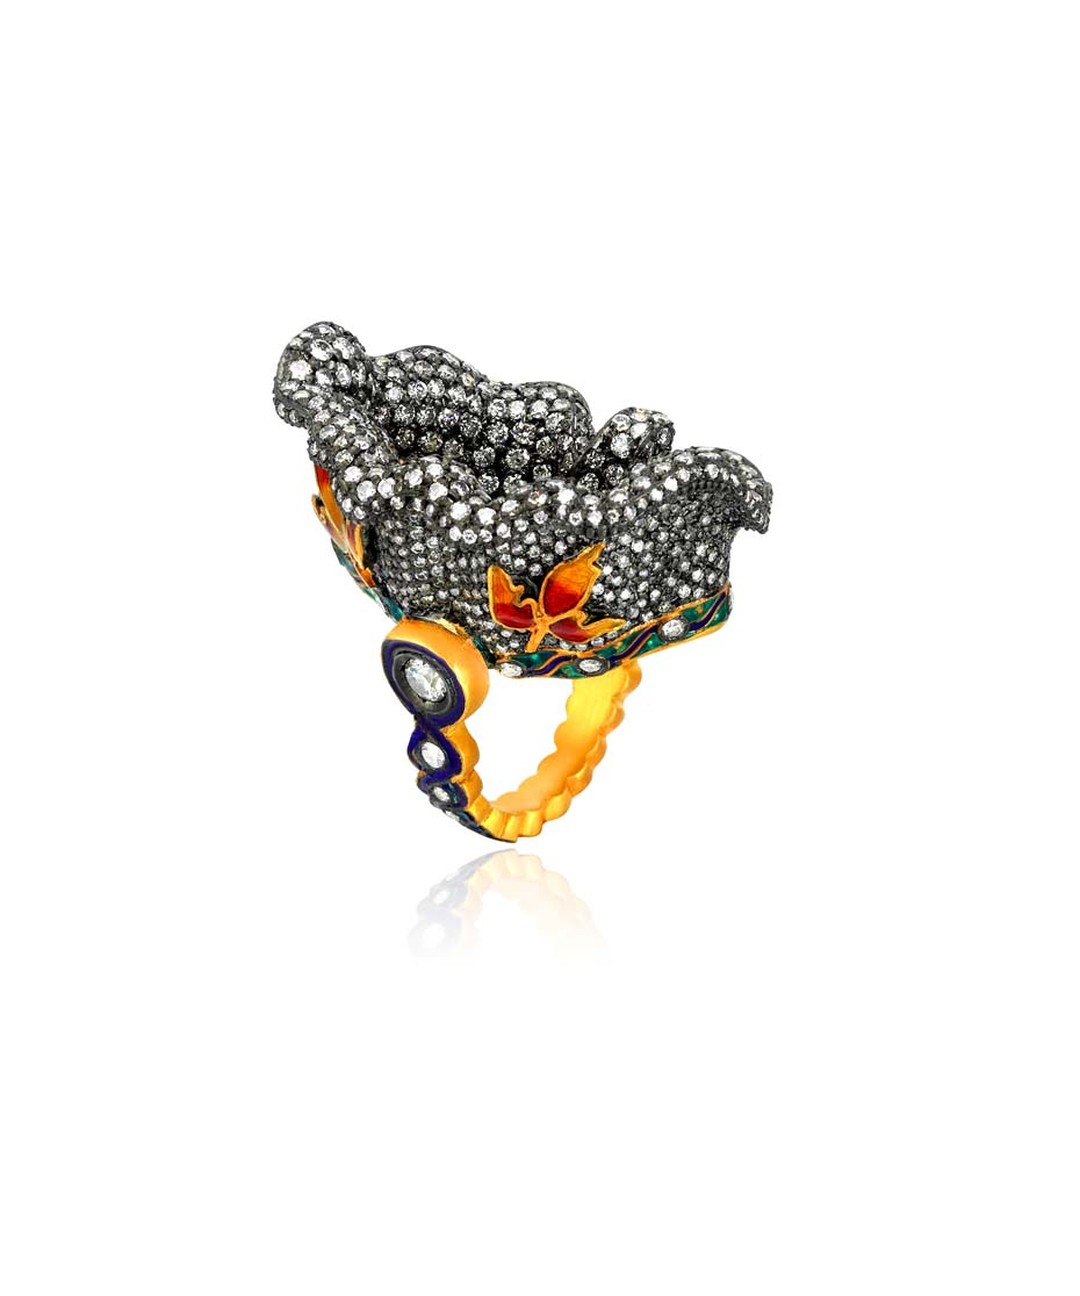 Pinar Oner Chora ring is inspired by the outstanding 14th century Byzantine mosaics of Istanbul's Chora church.